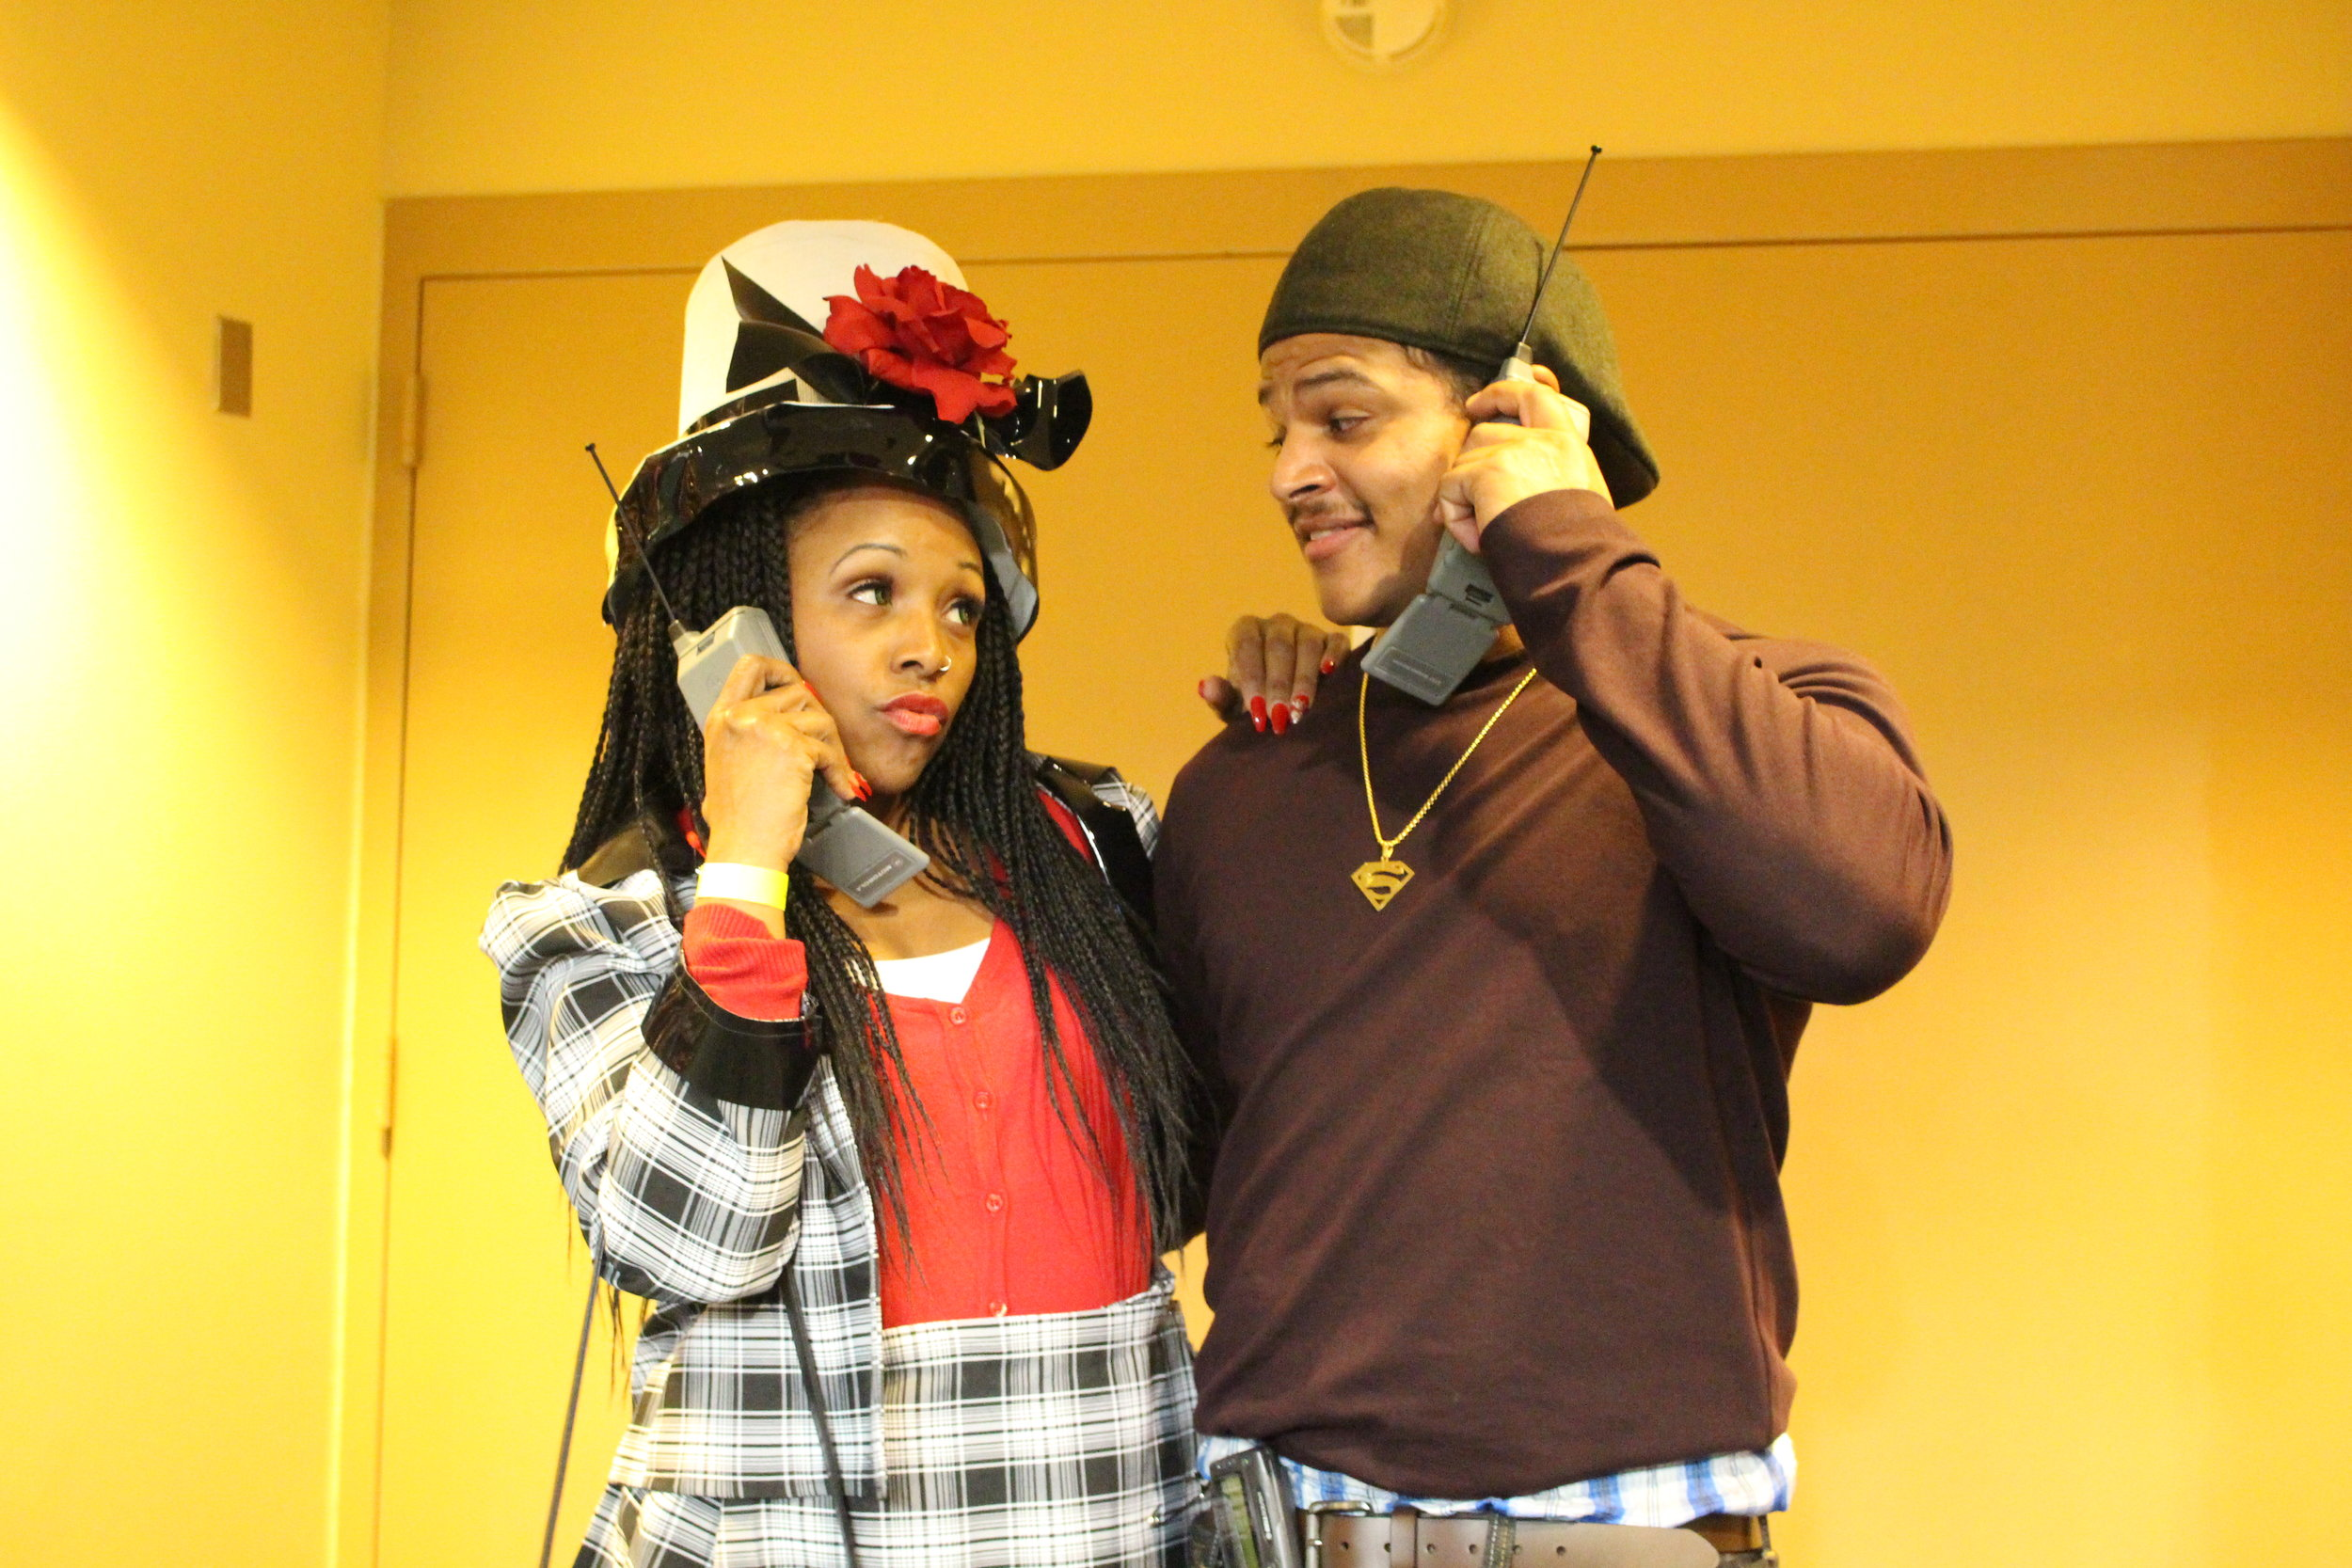 Dionne and Murray from Clueless